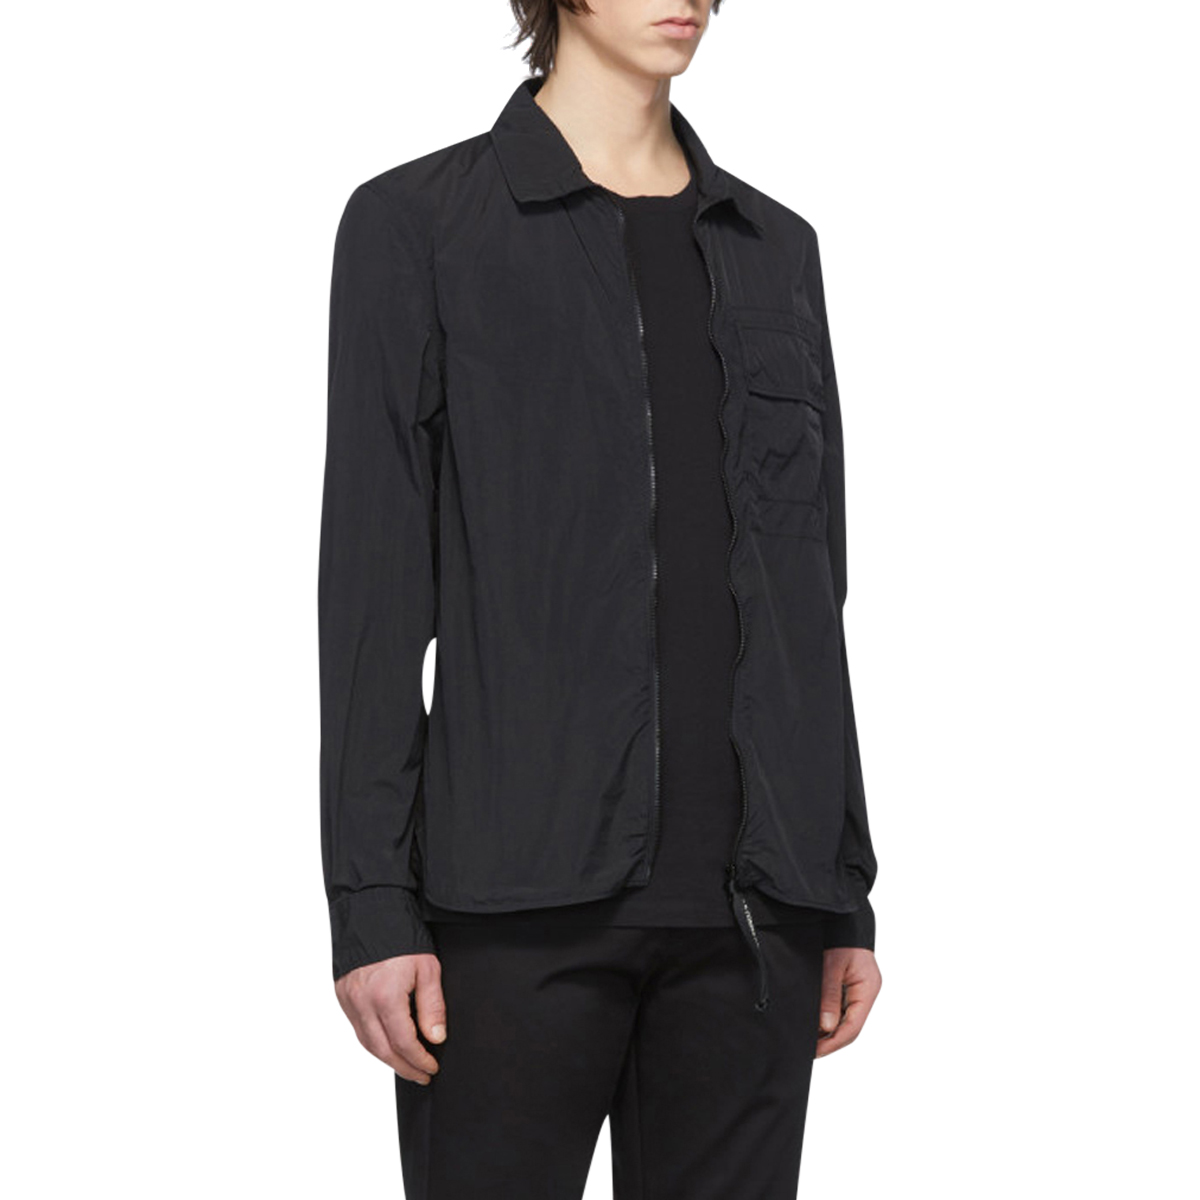 CP Company CR-L Zip-Up Shirt